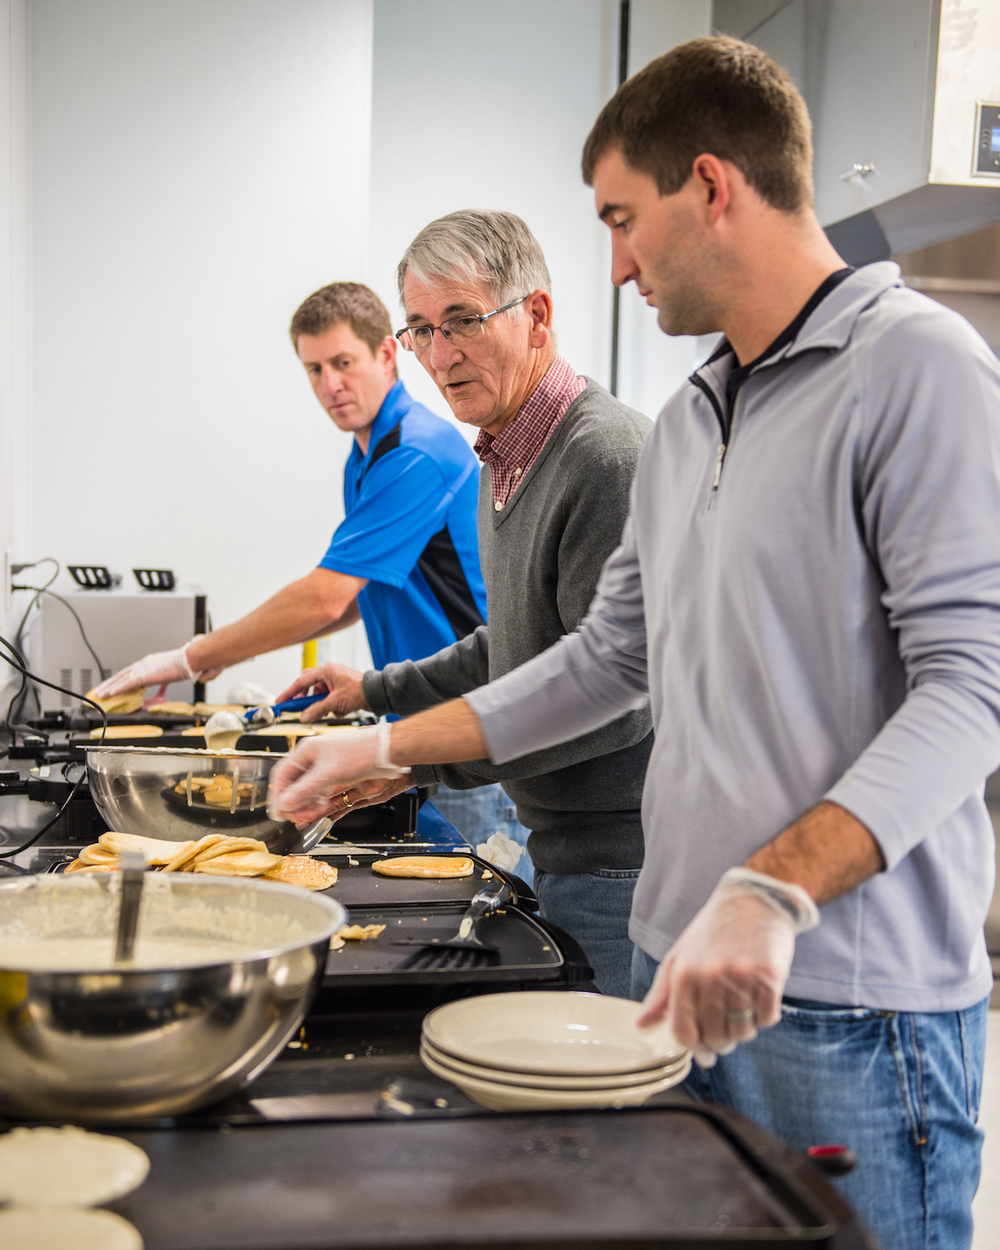 Knights prepare pancakes in the kitchen.